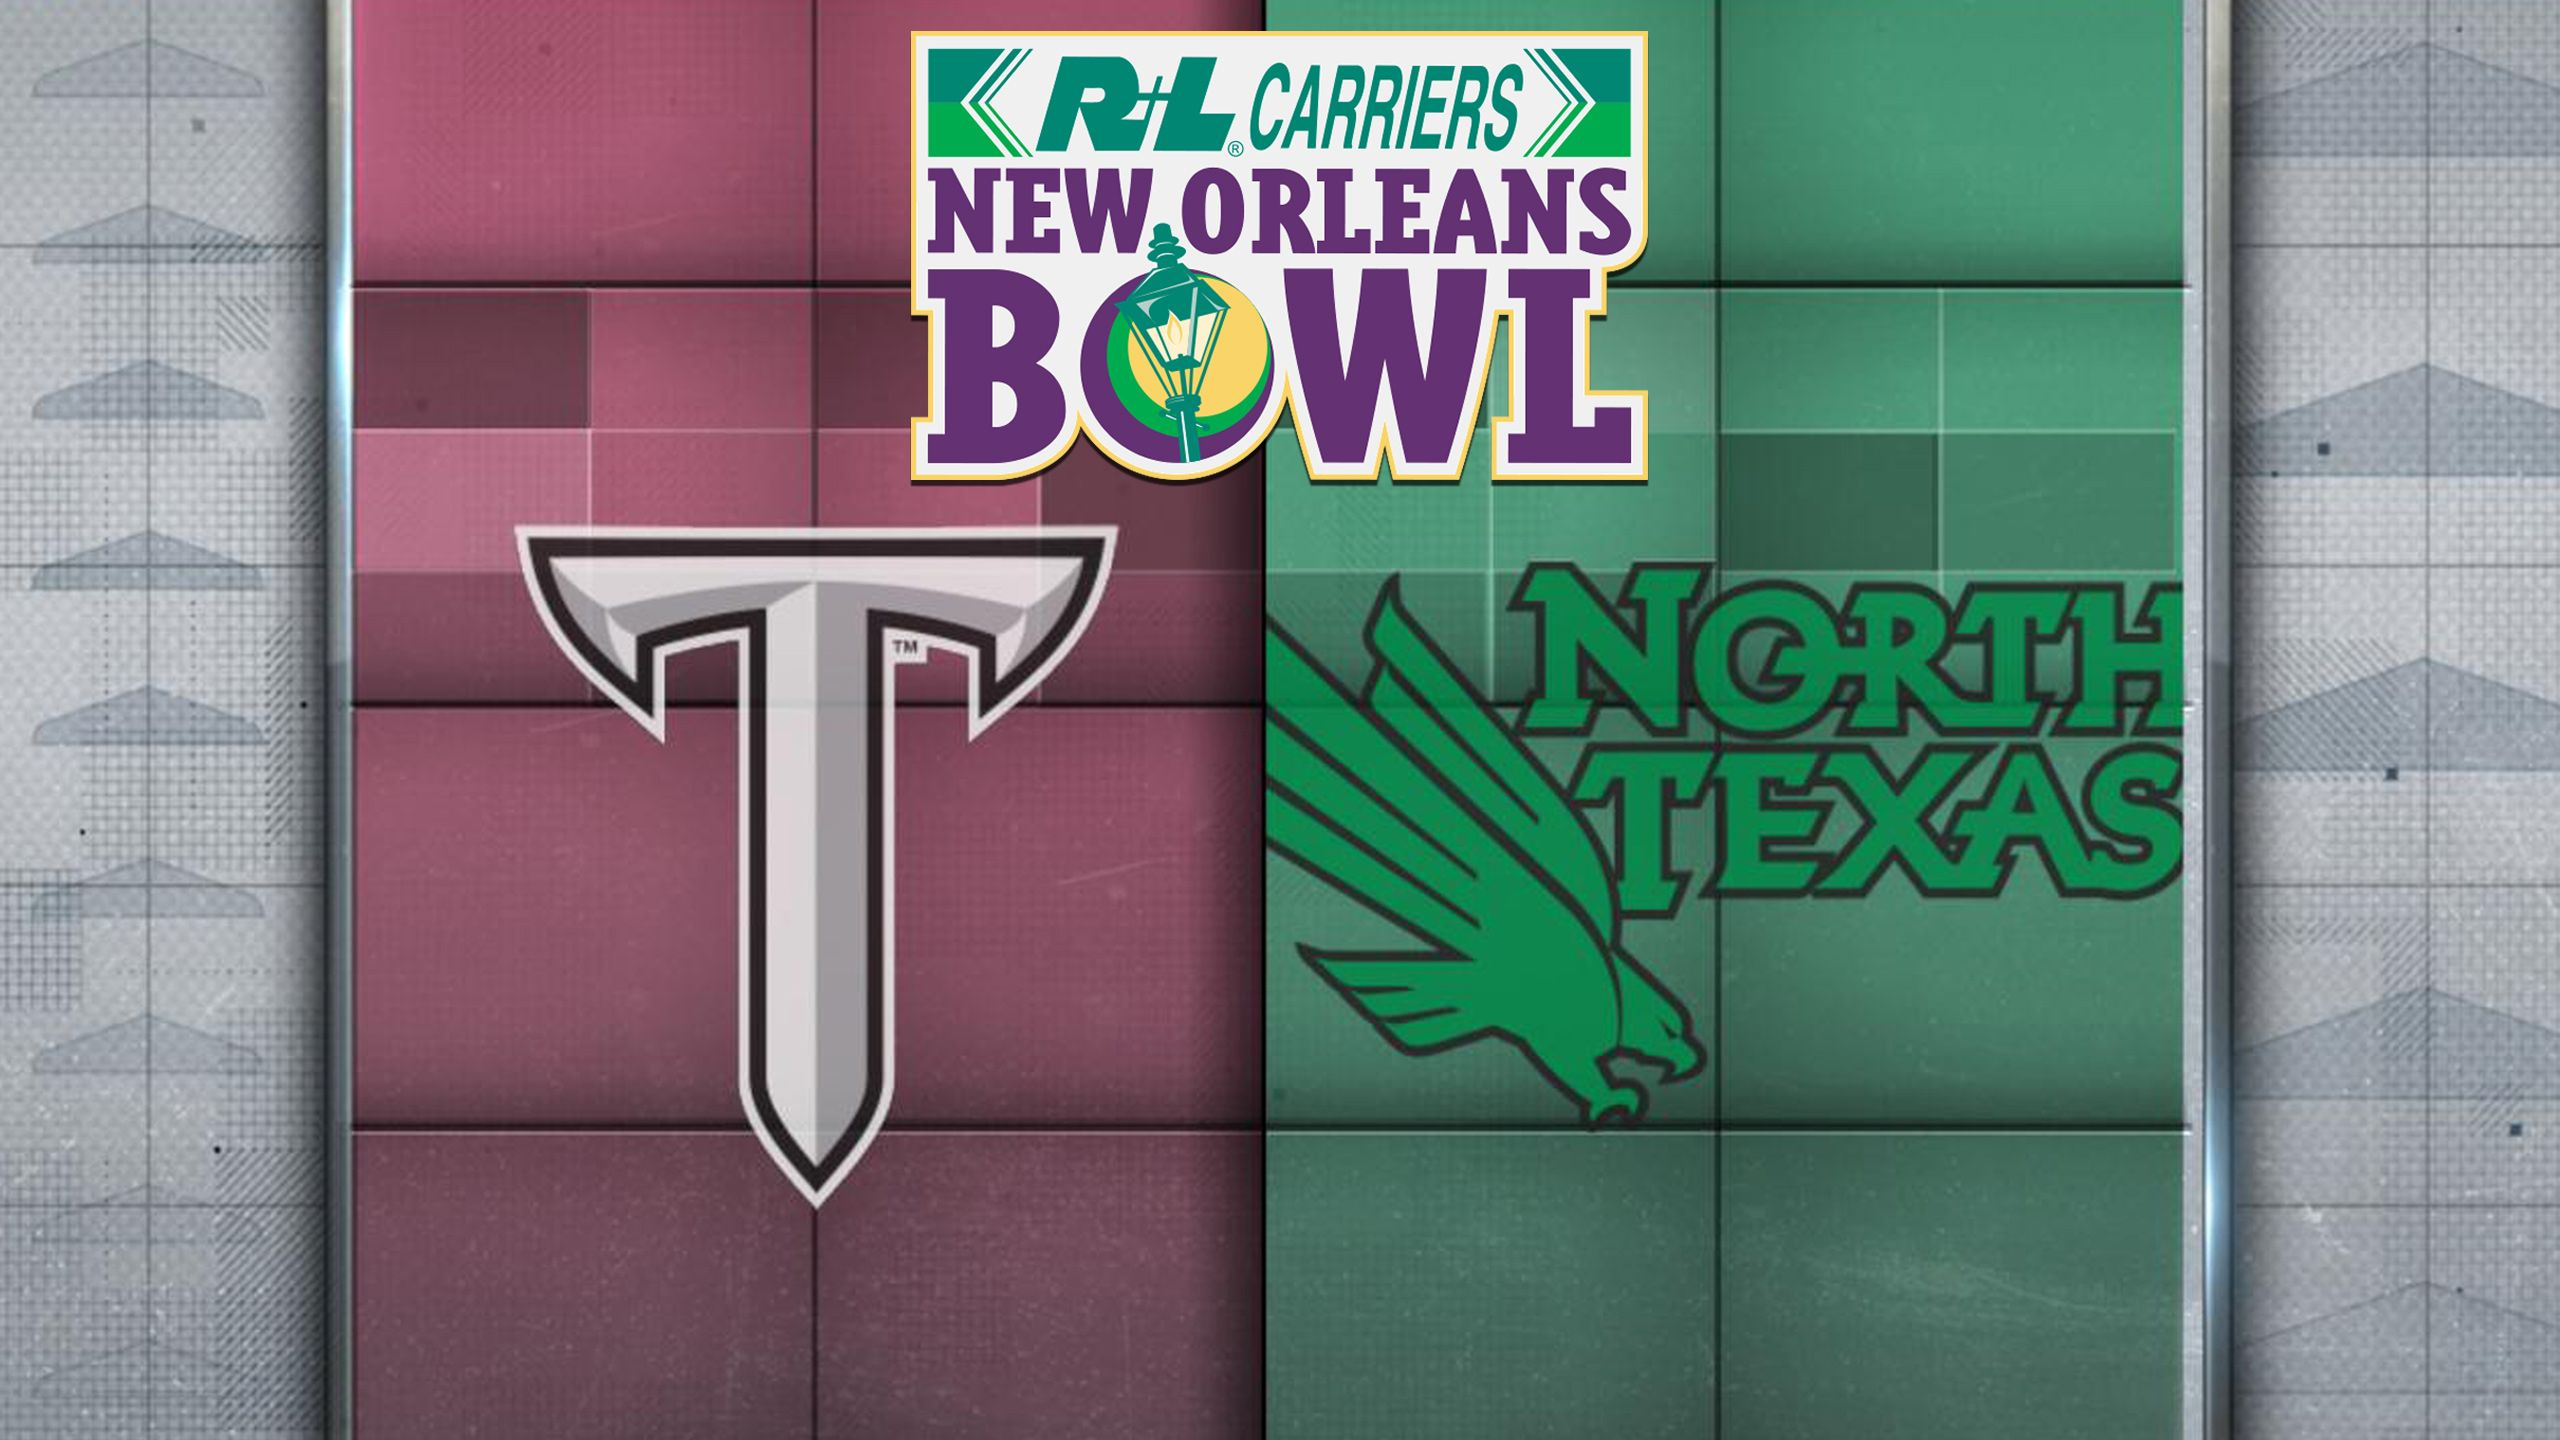 Troy vs. North Texas (R+L Carriers New Orleans Bowl) (re-air)